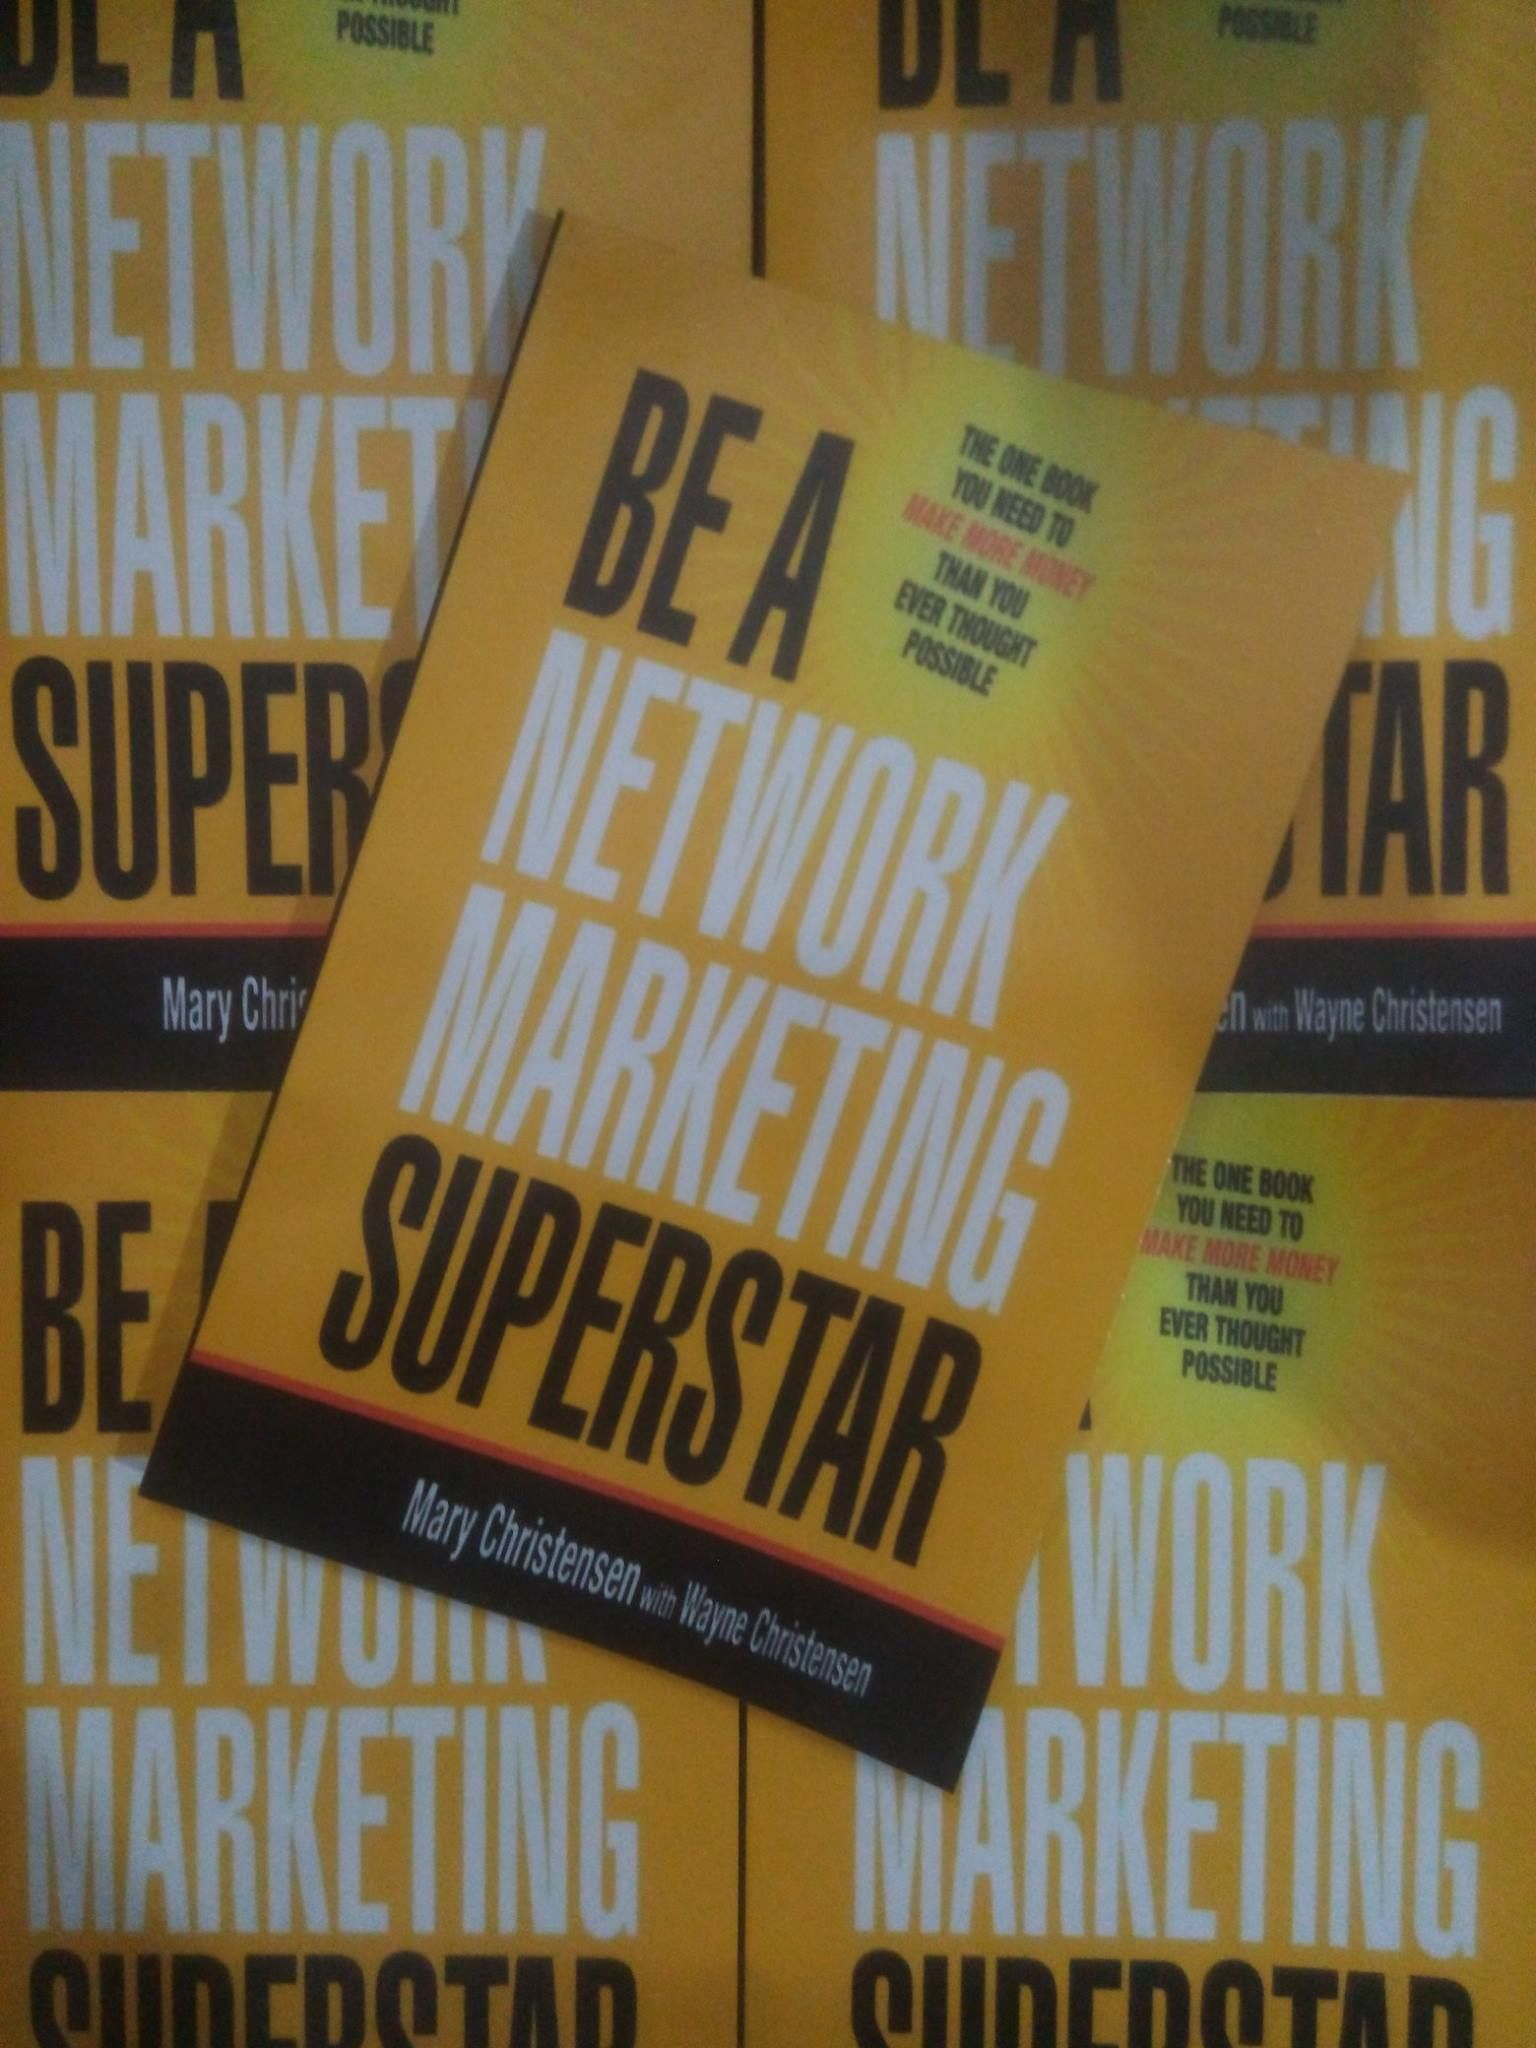 finest selection 2377d dd375 Be A Network Marketing Superstar by Mary Chirstensen.